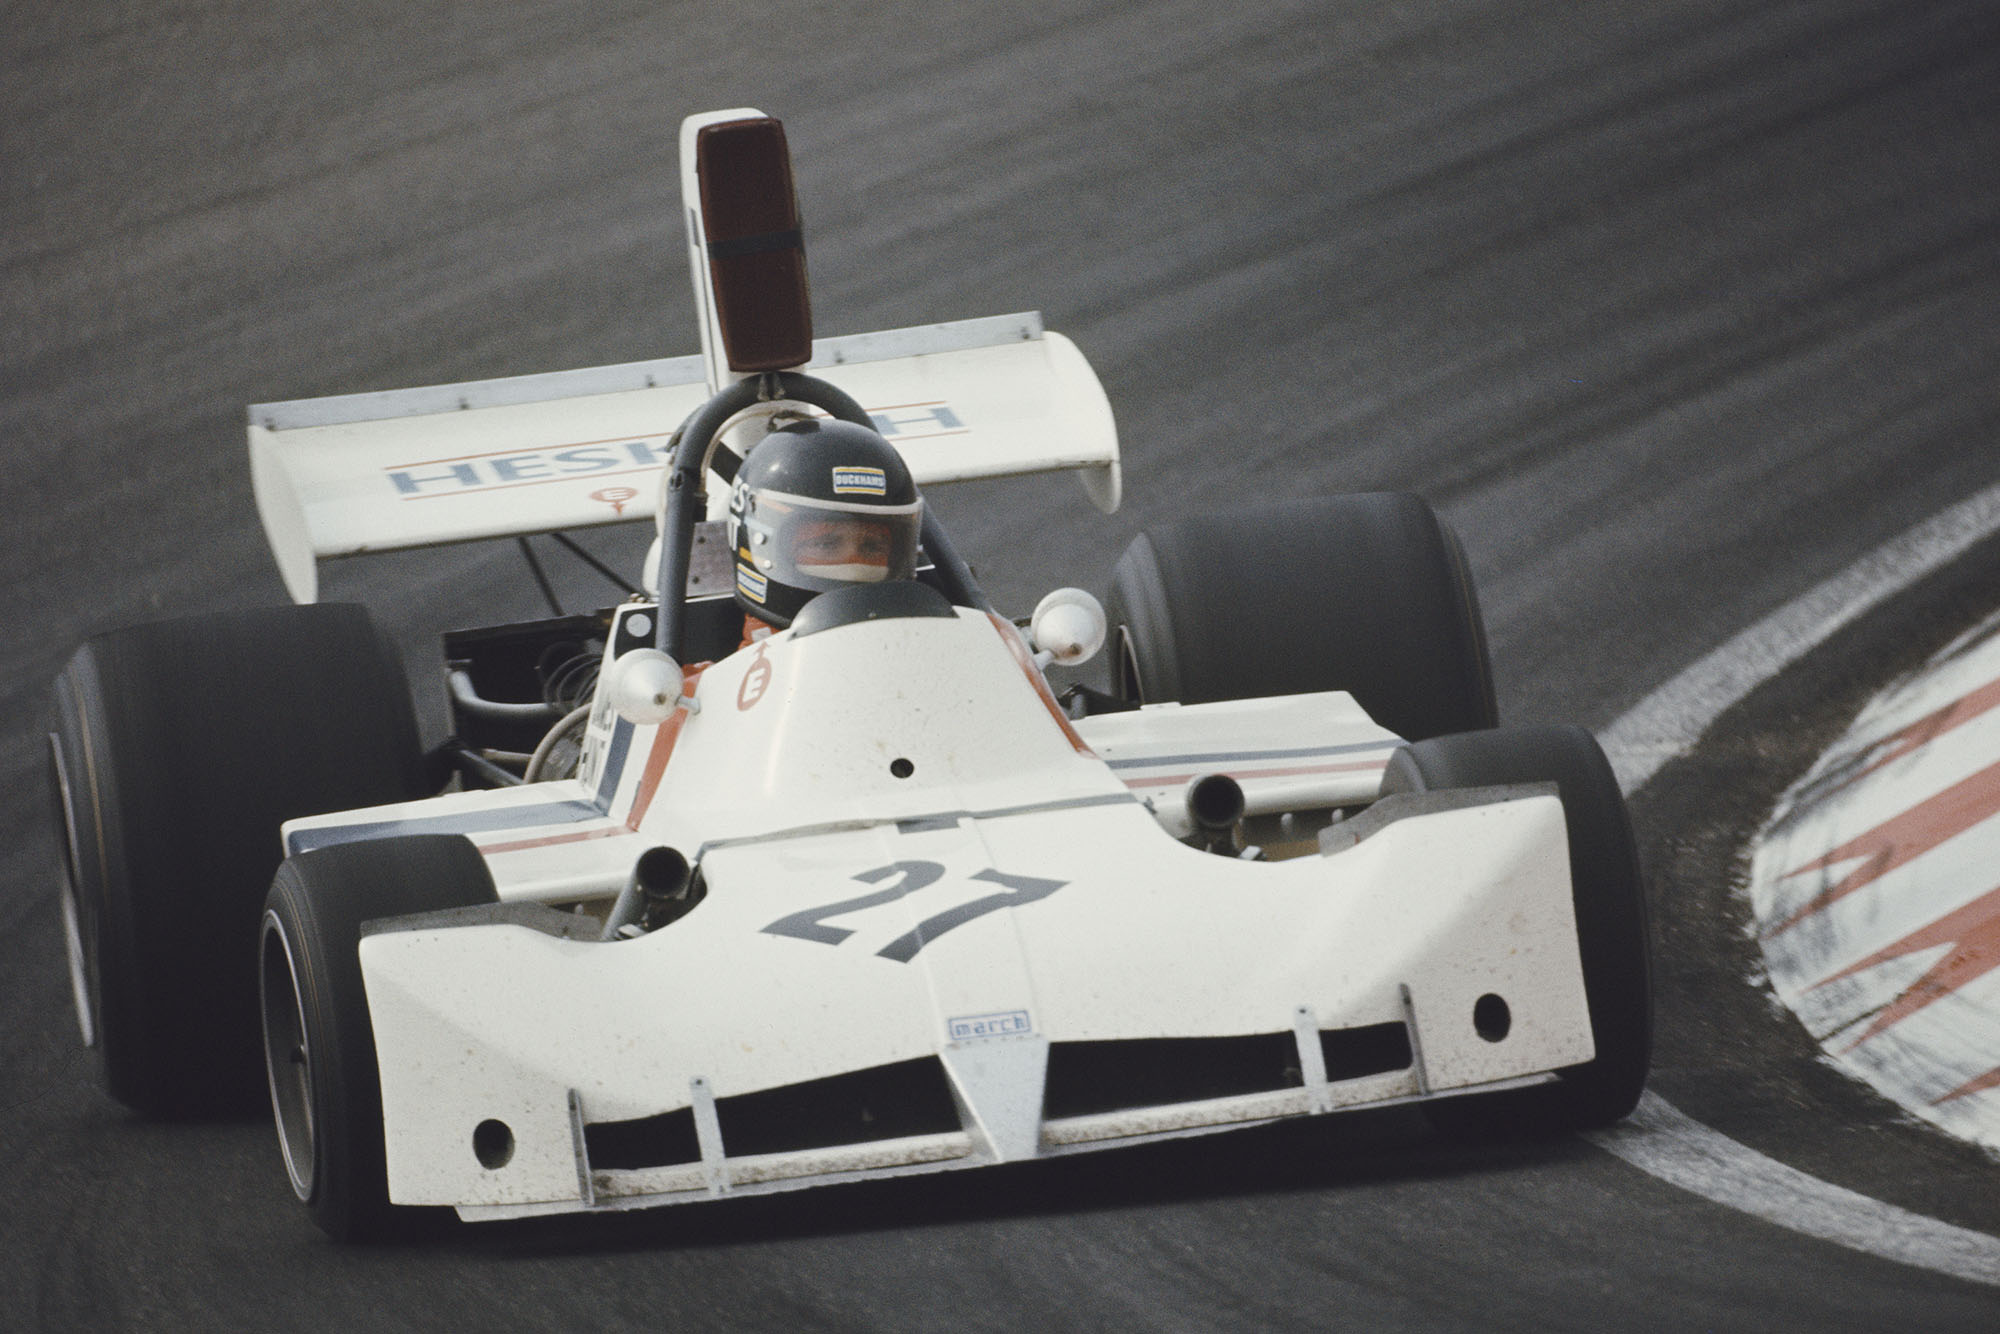 Hesketh's James Hunt takes corner at the 1973 Dutch Grand Prix, Zandvoort.